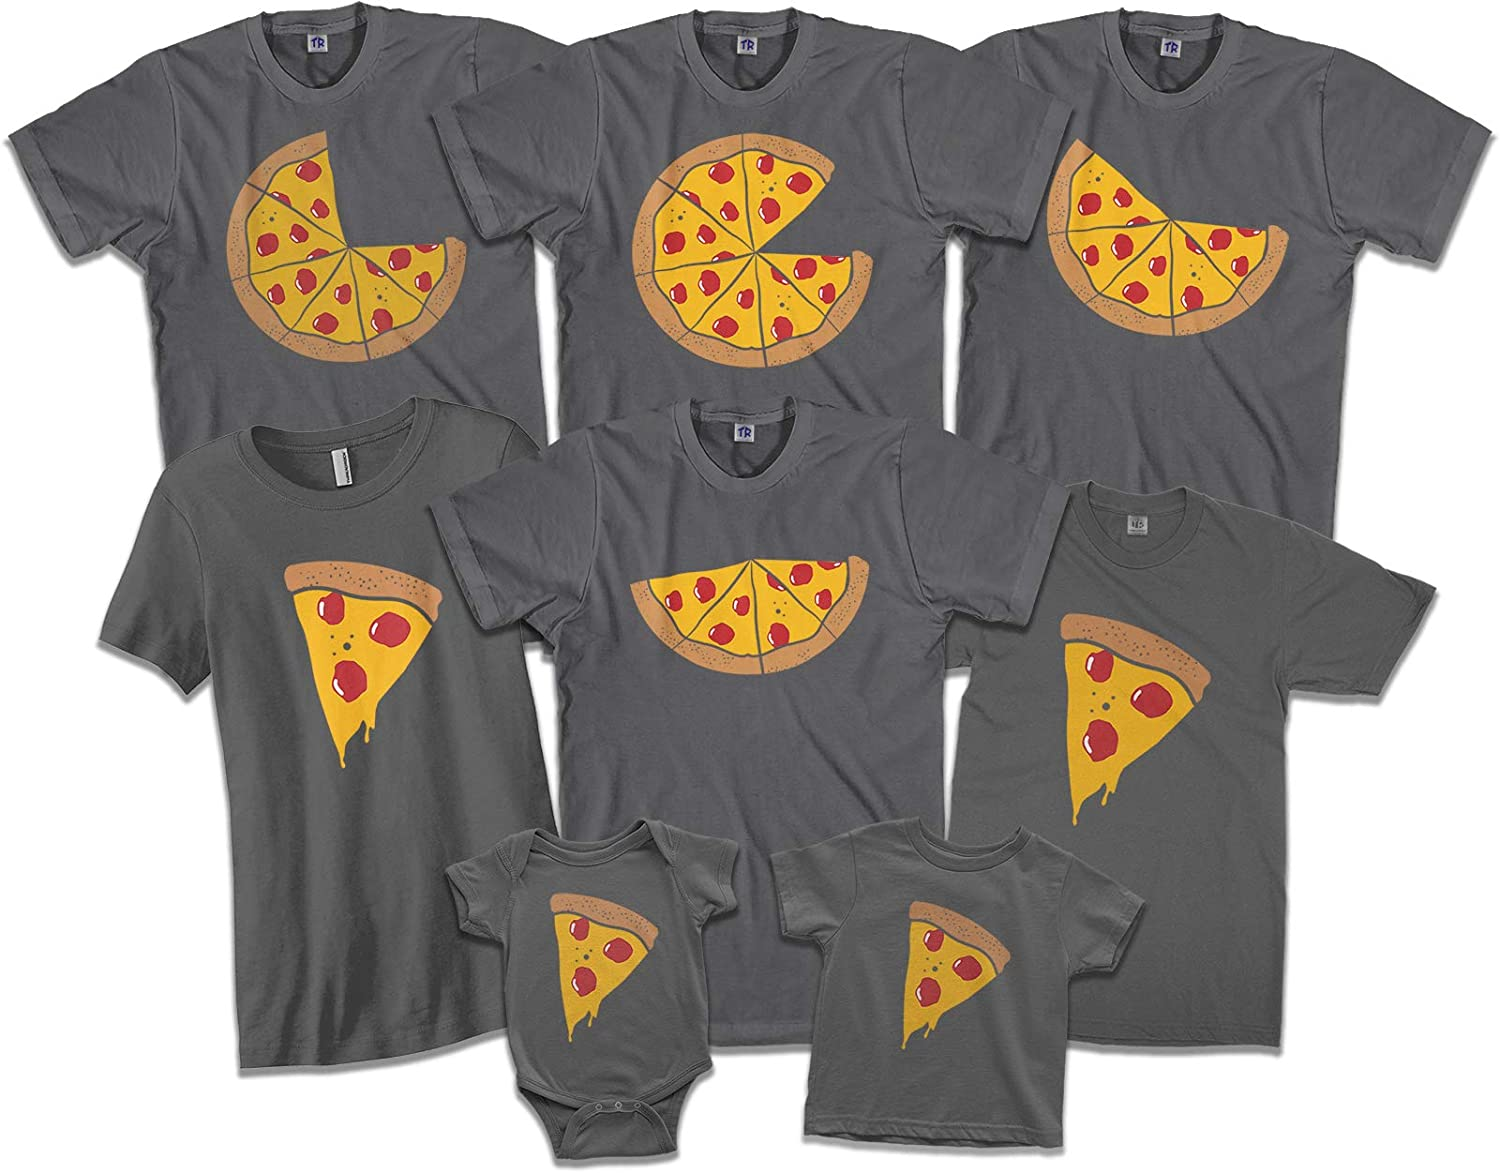 Pizza Pie & Slices | Mom Dad Baby Son Daughter Matching Family Shirts Set